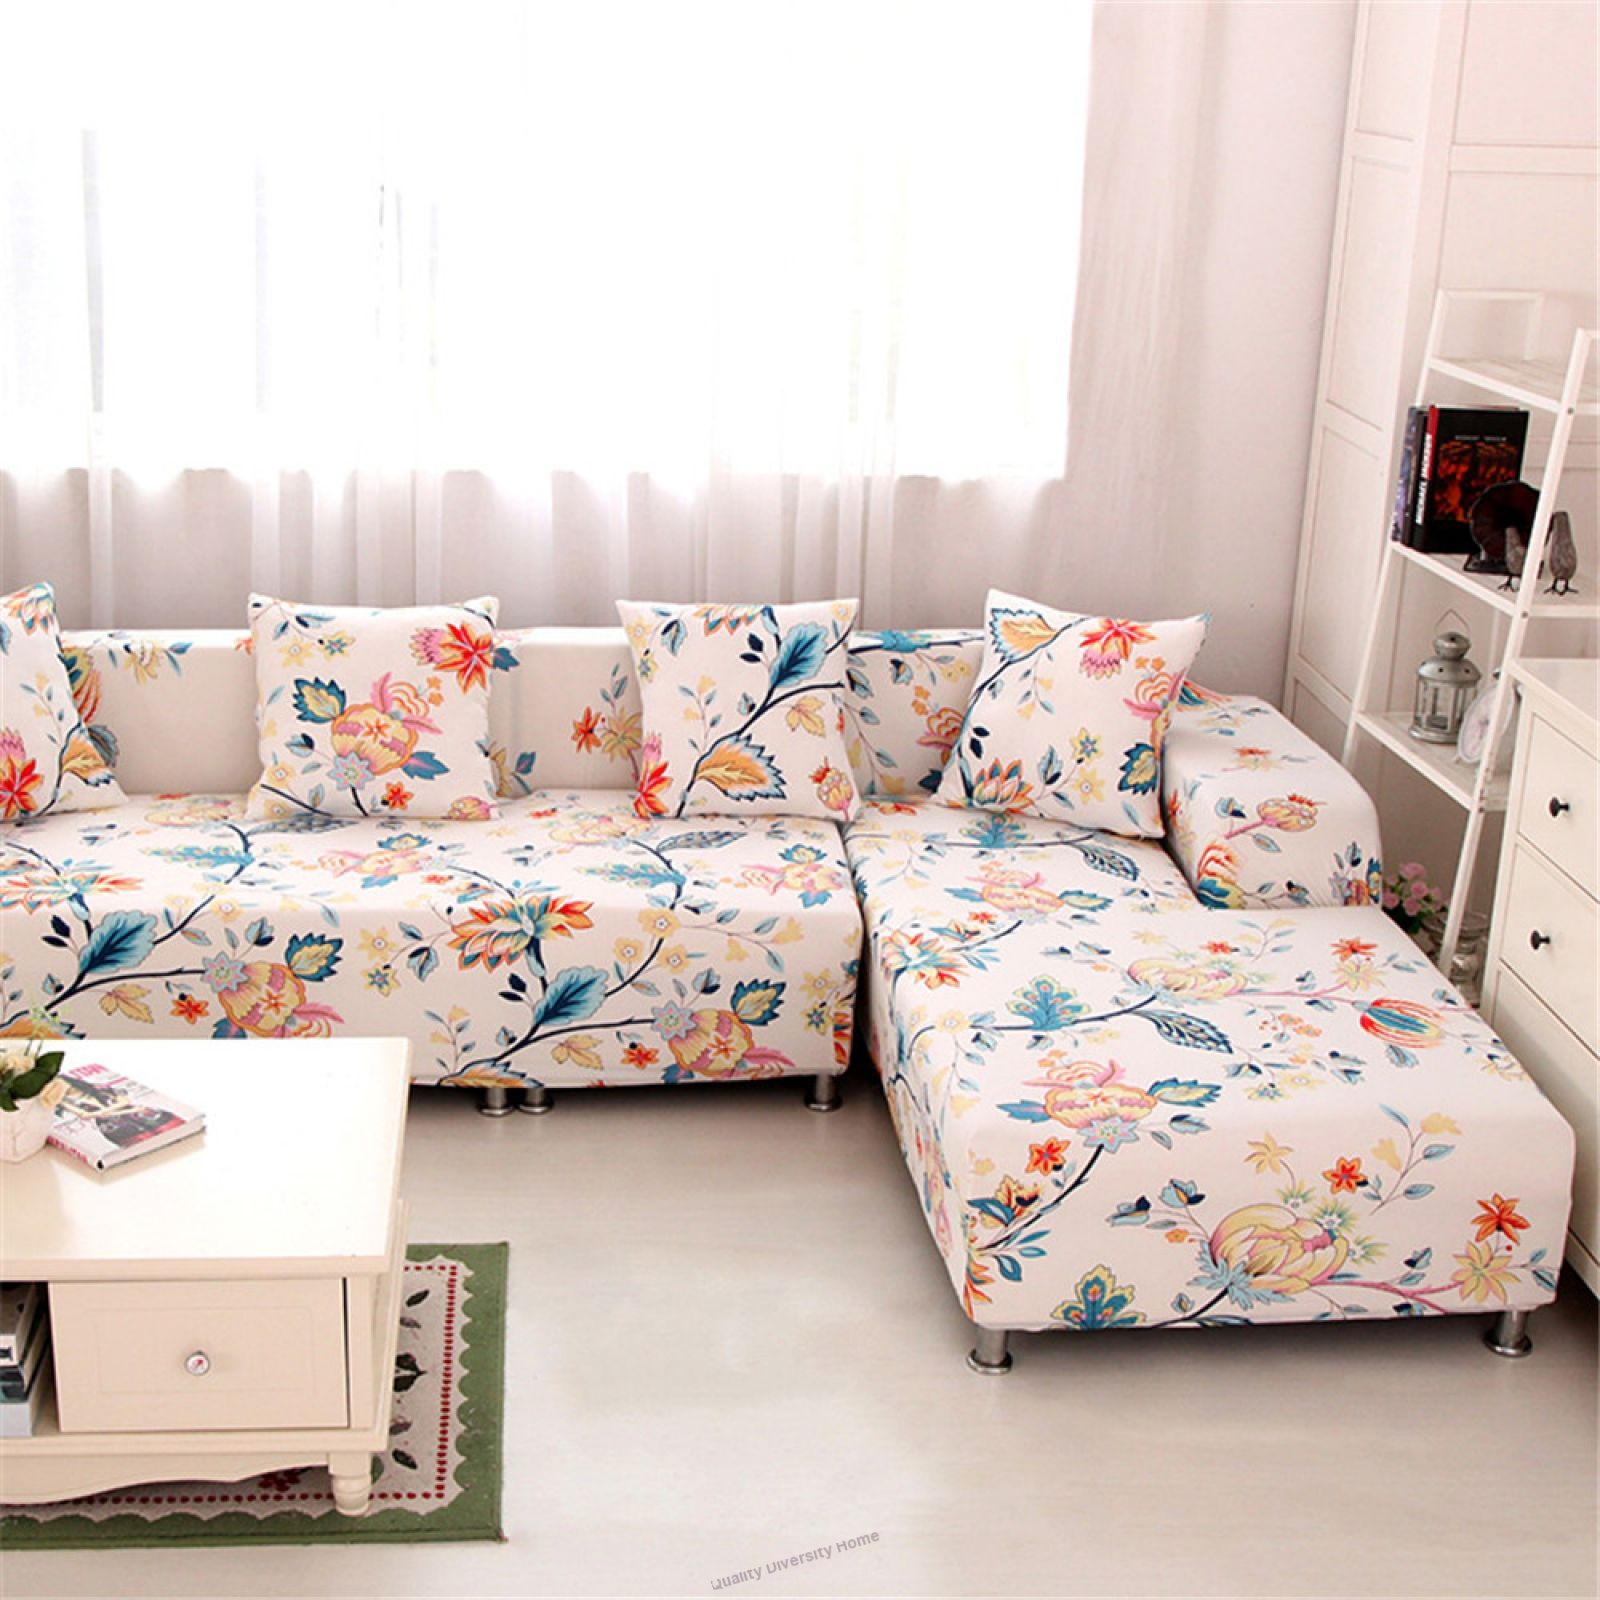 Floral Print Spandex Fabric Stretch Sofa Slipcover Couch Covers Flowery Odour Slip Covers Couch Couch Covers Slipcovers Diy Sofa Cover